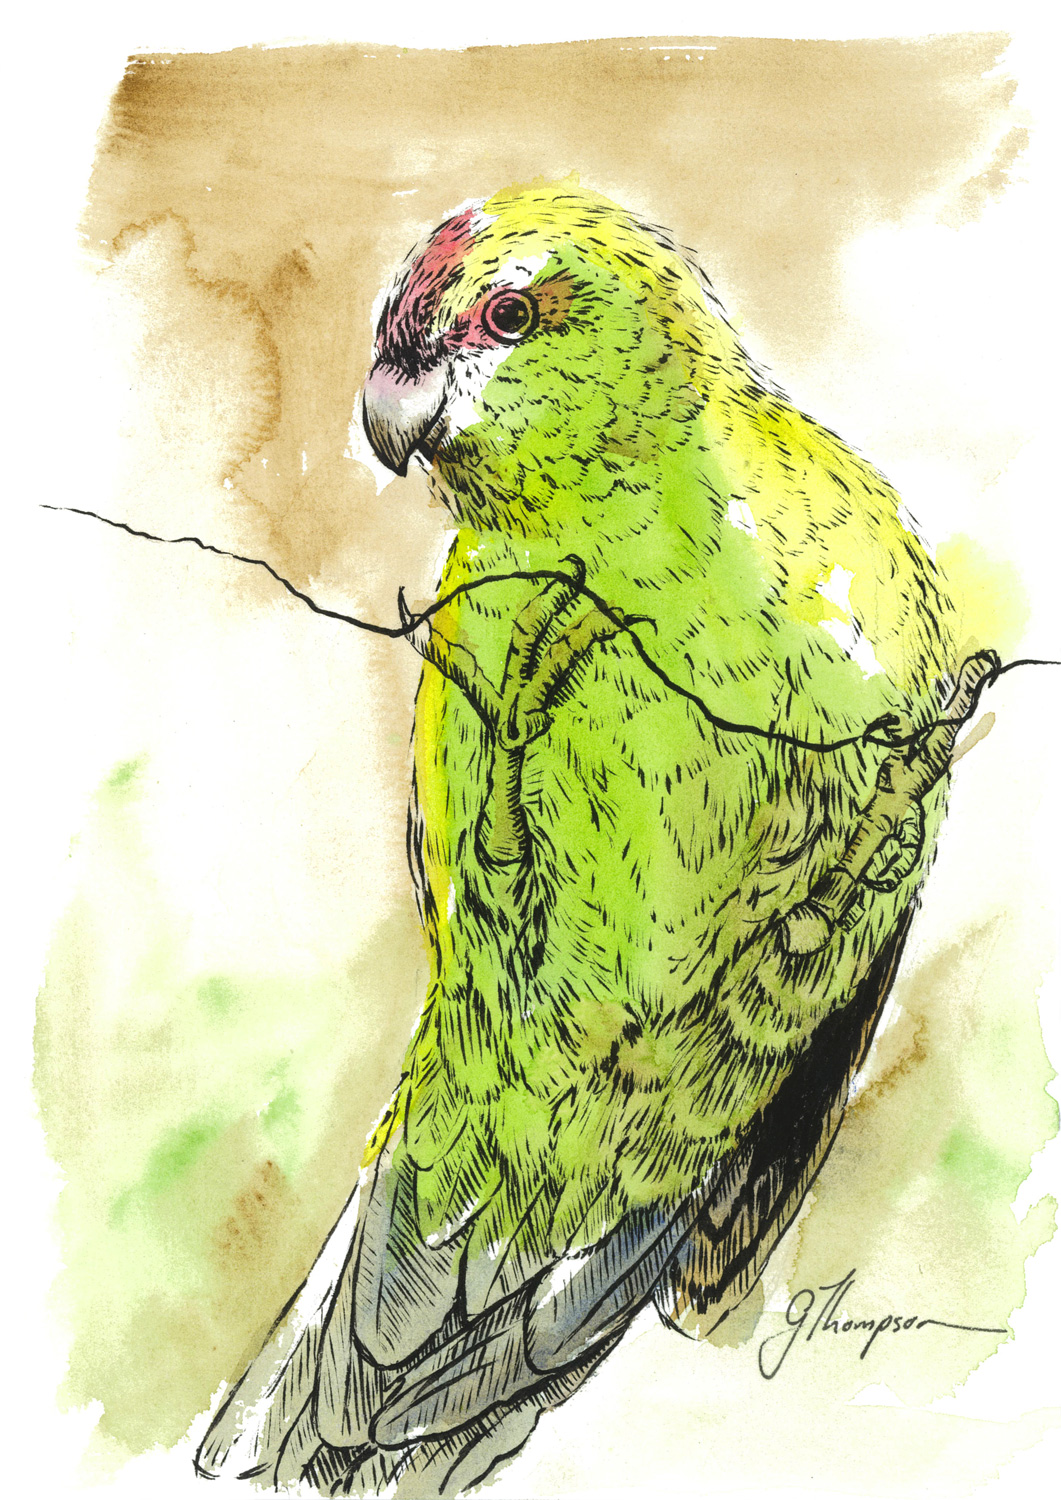 Cheeky Kakariki - FOR SALE $90